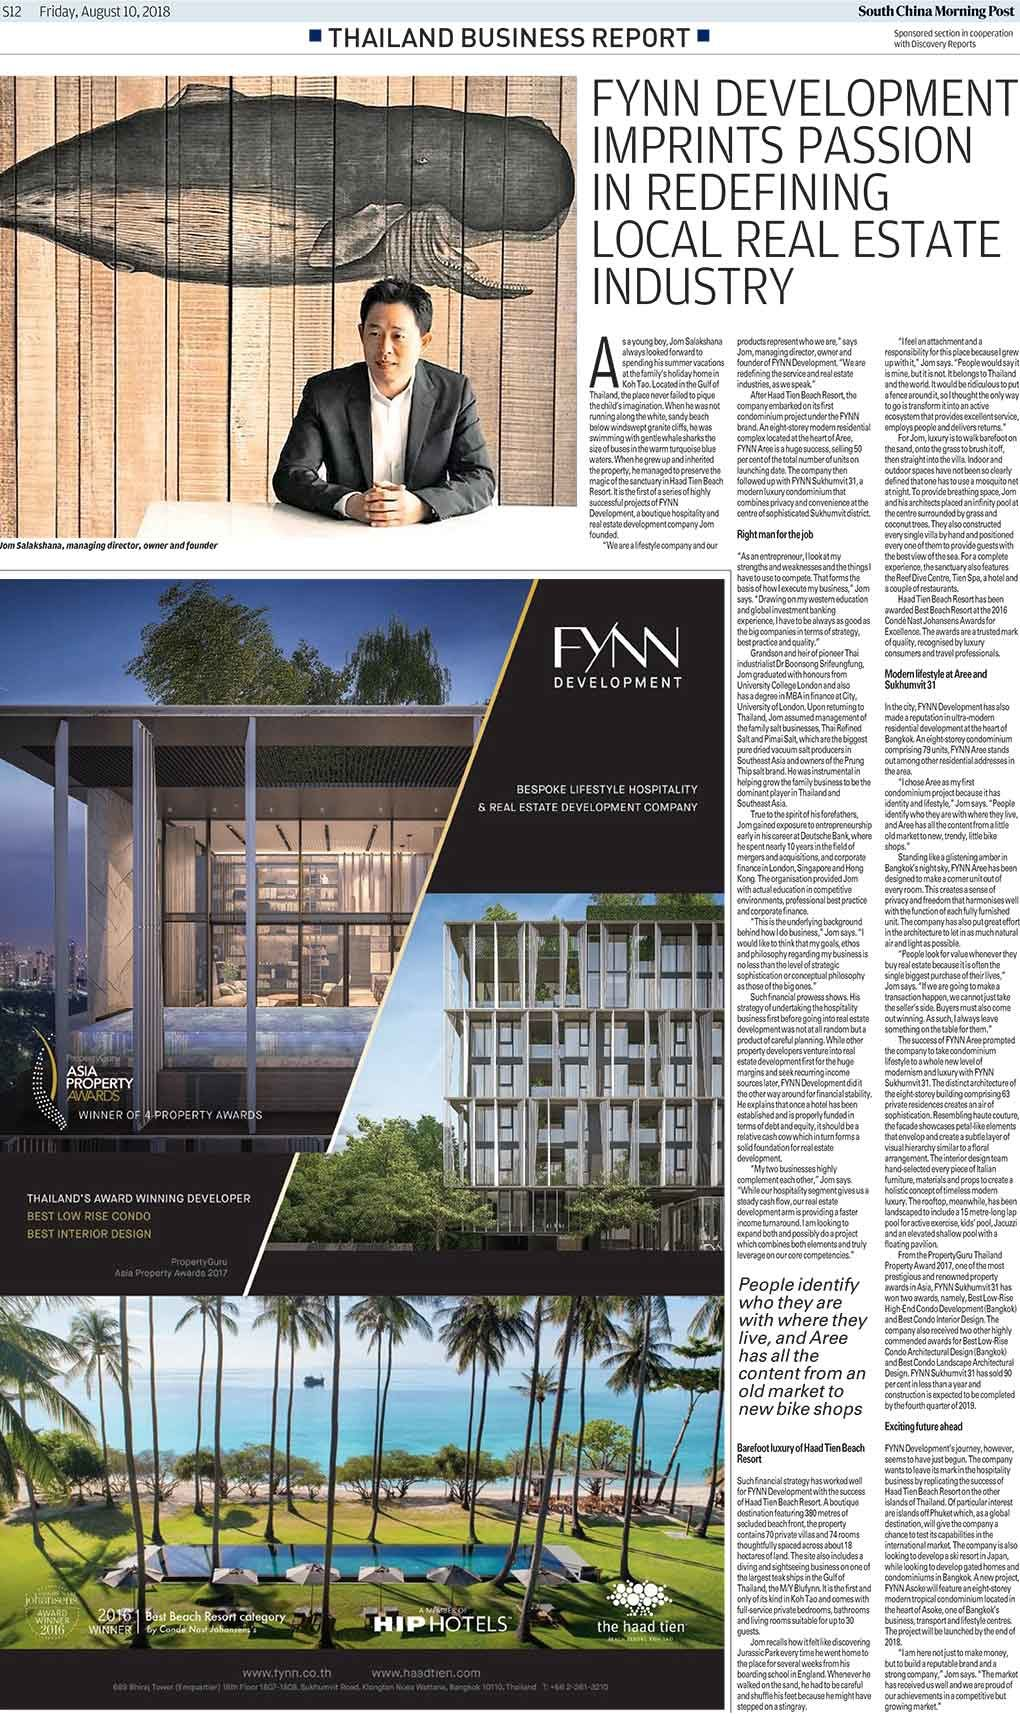 2018-scmp-thailandreport-p12-2